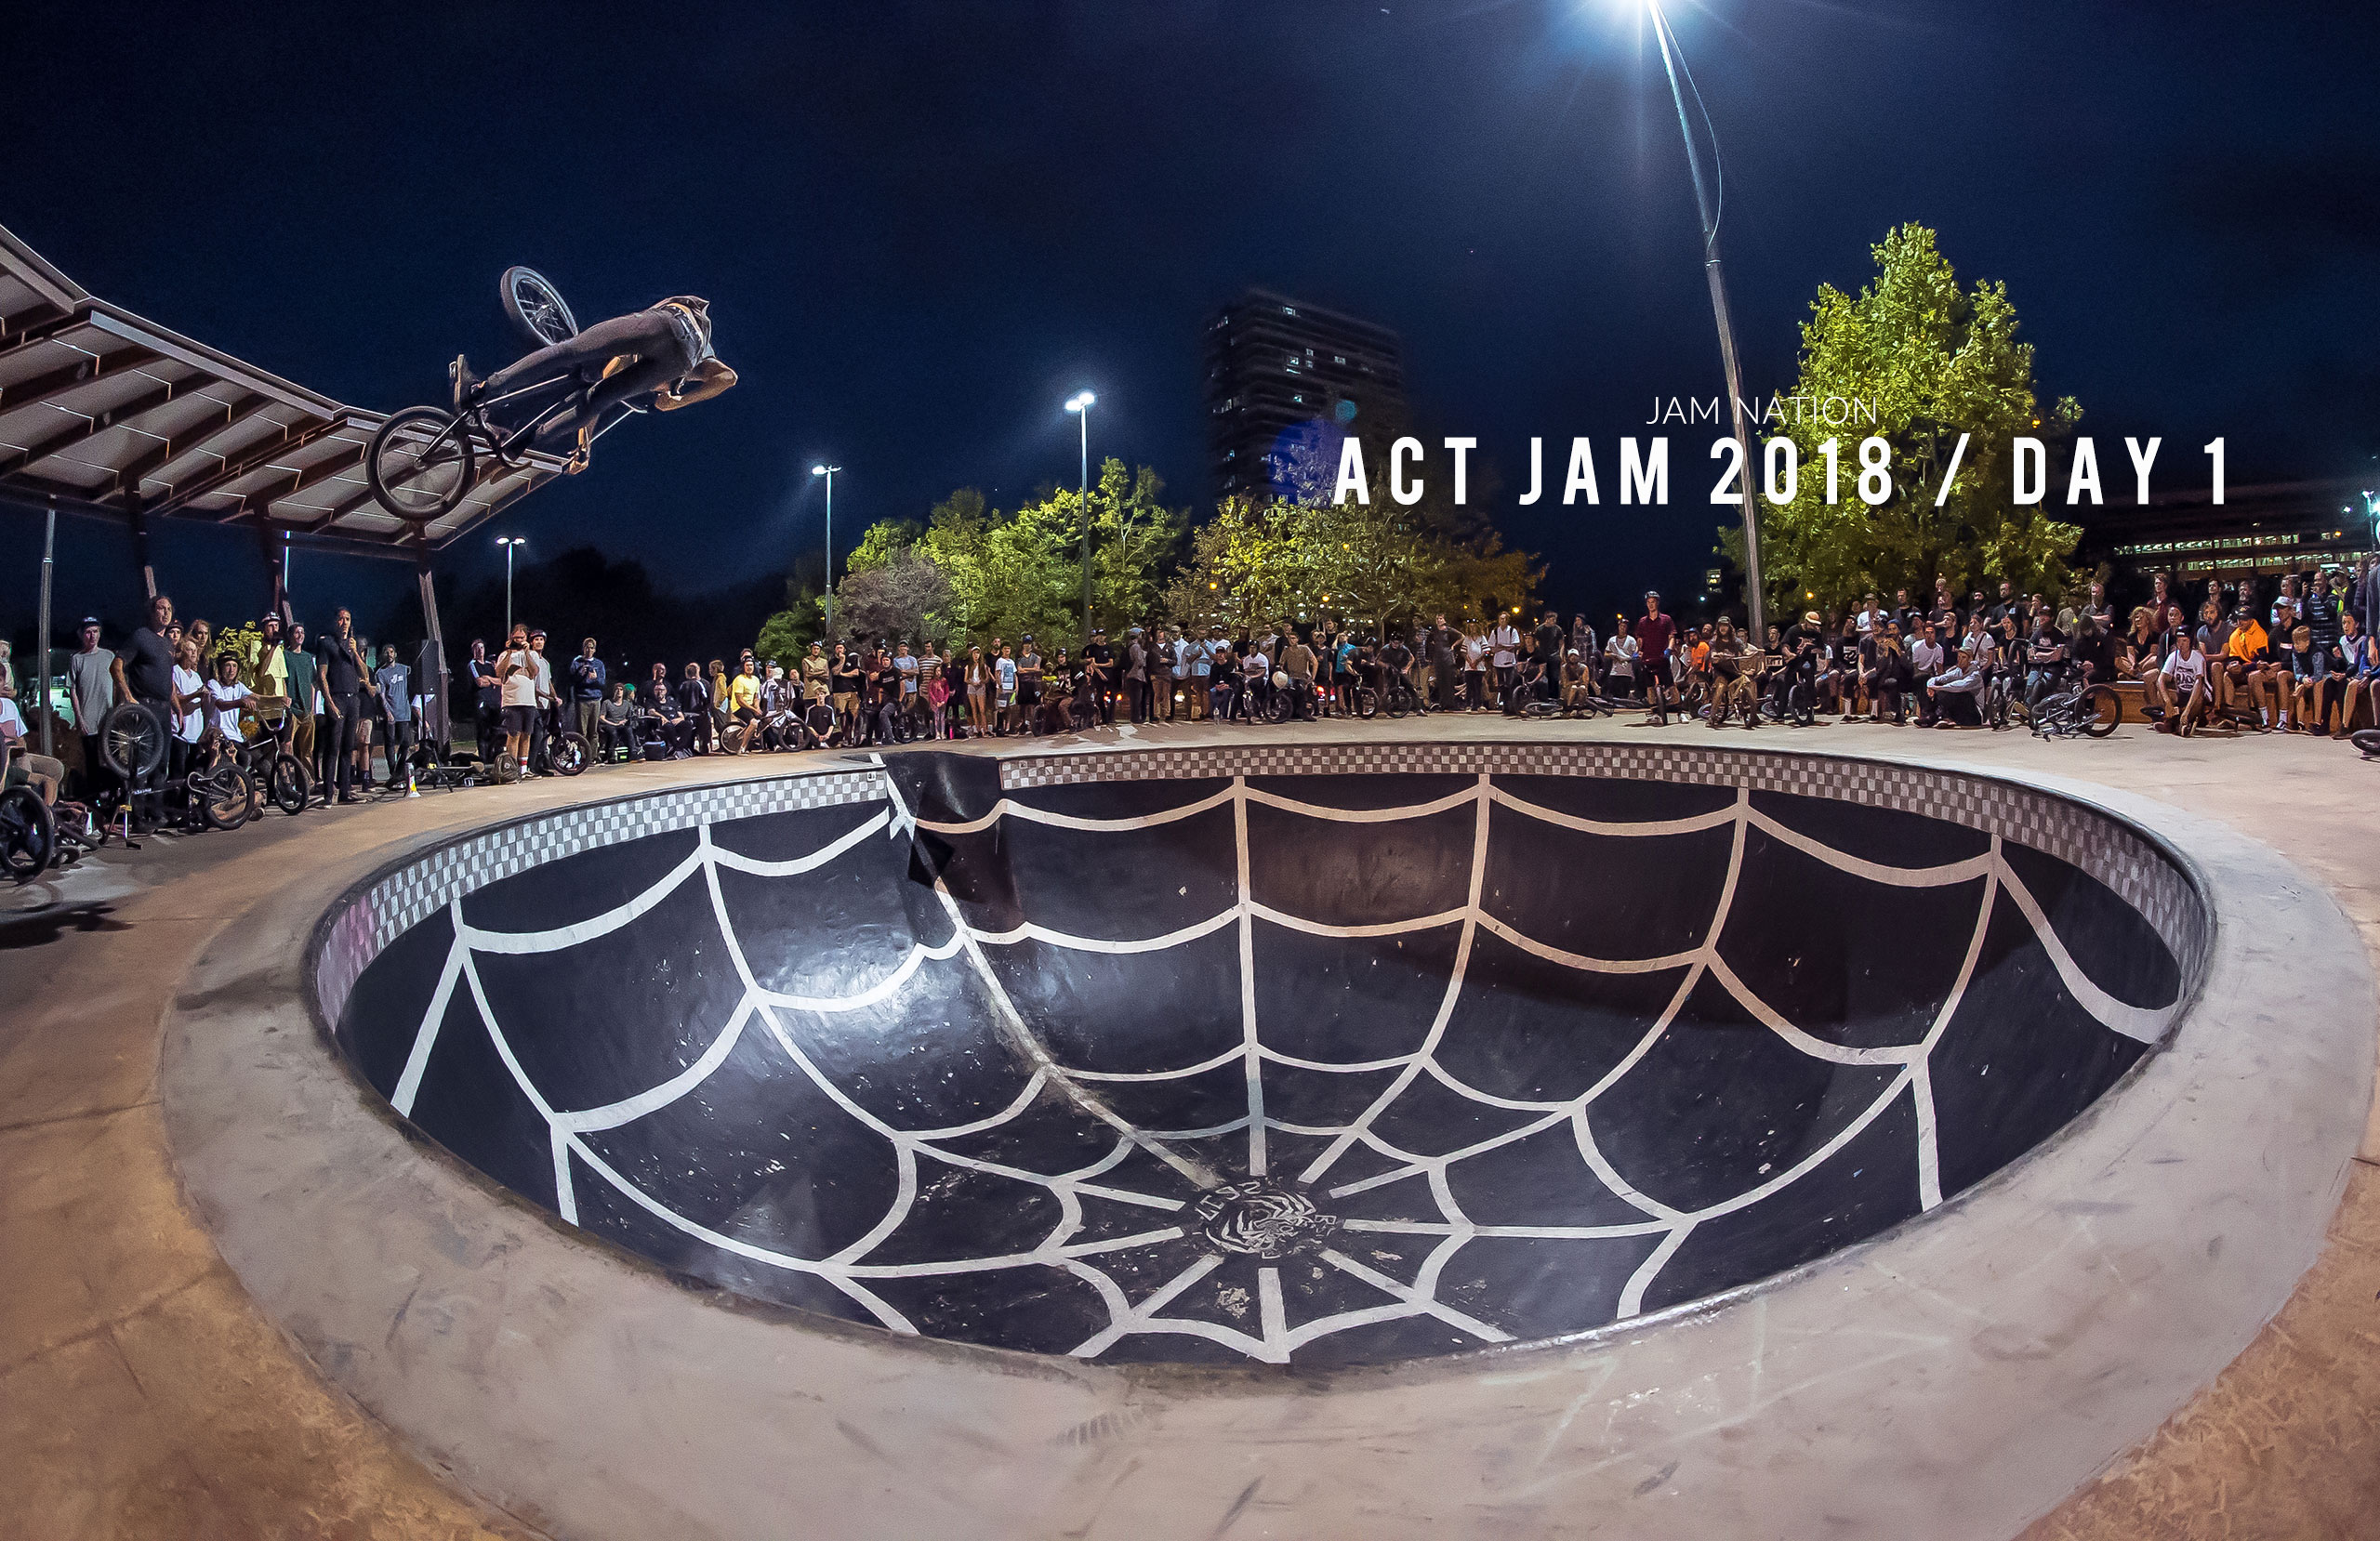 ACT JAM 2018 / DAY 1